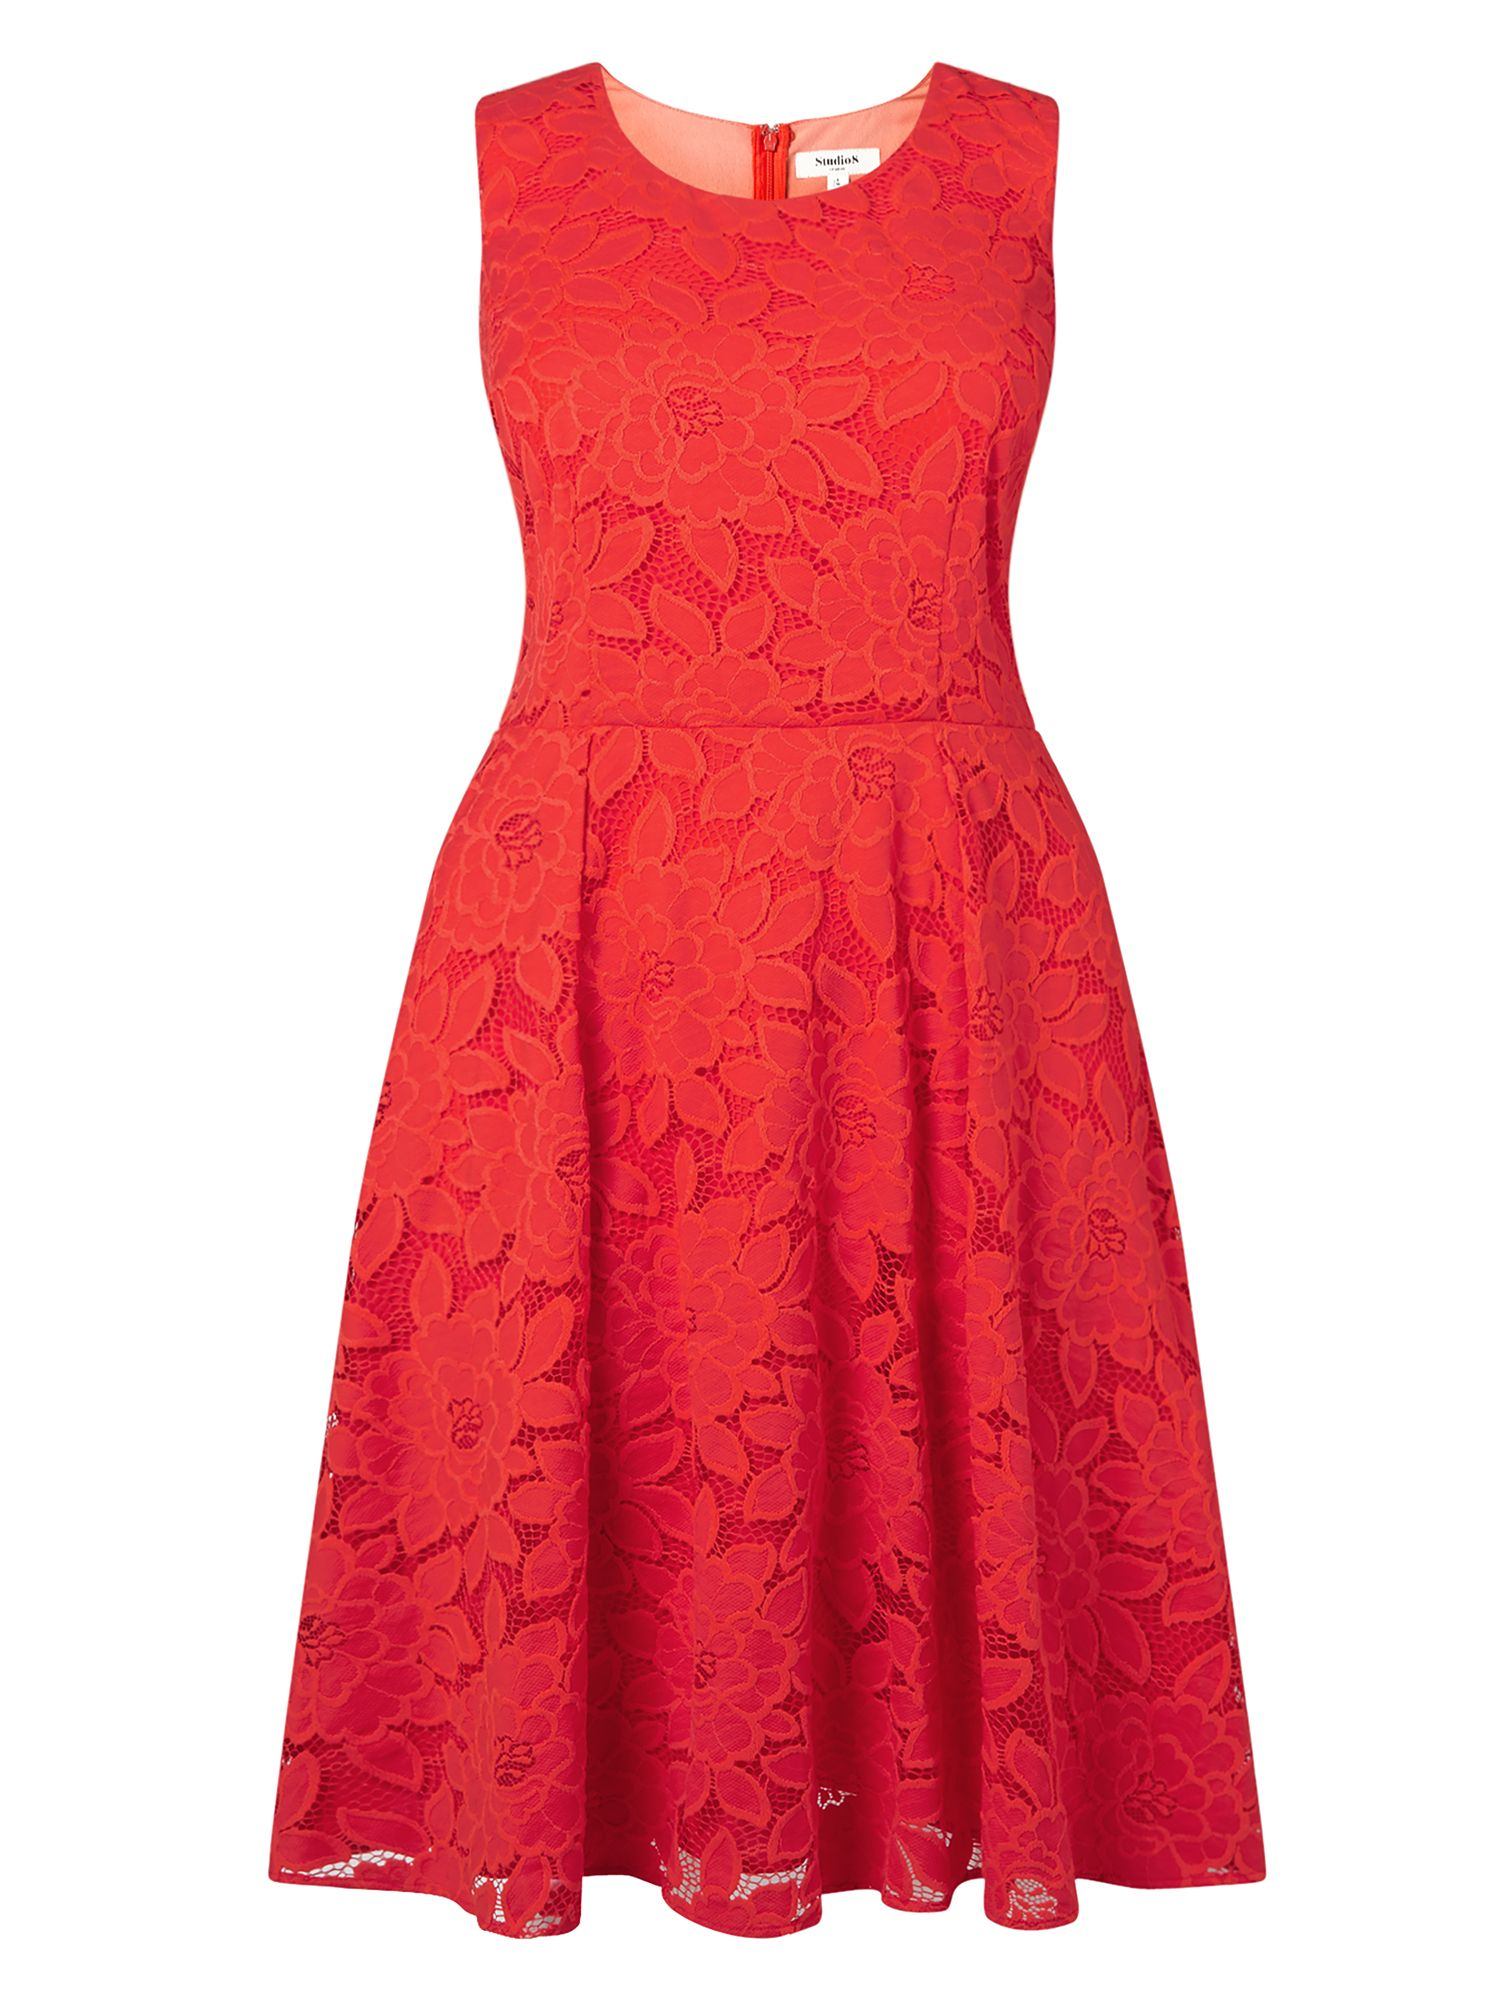 Studio 8 Tulip Dress, Red